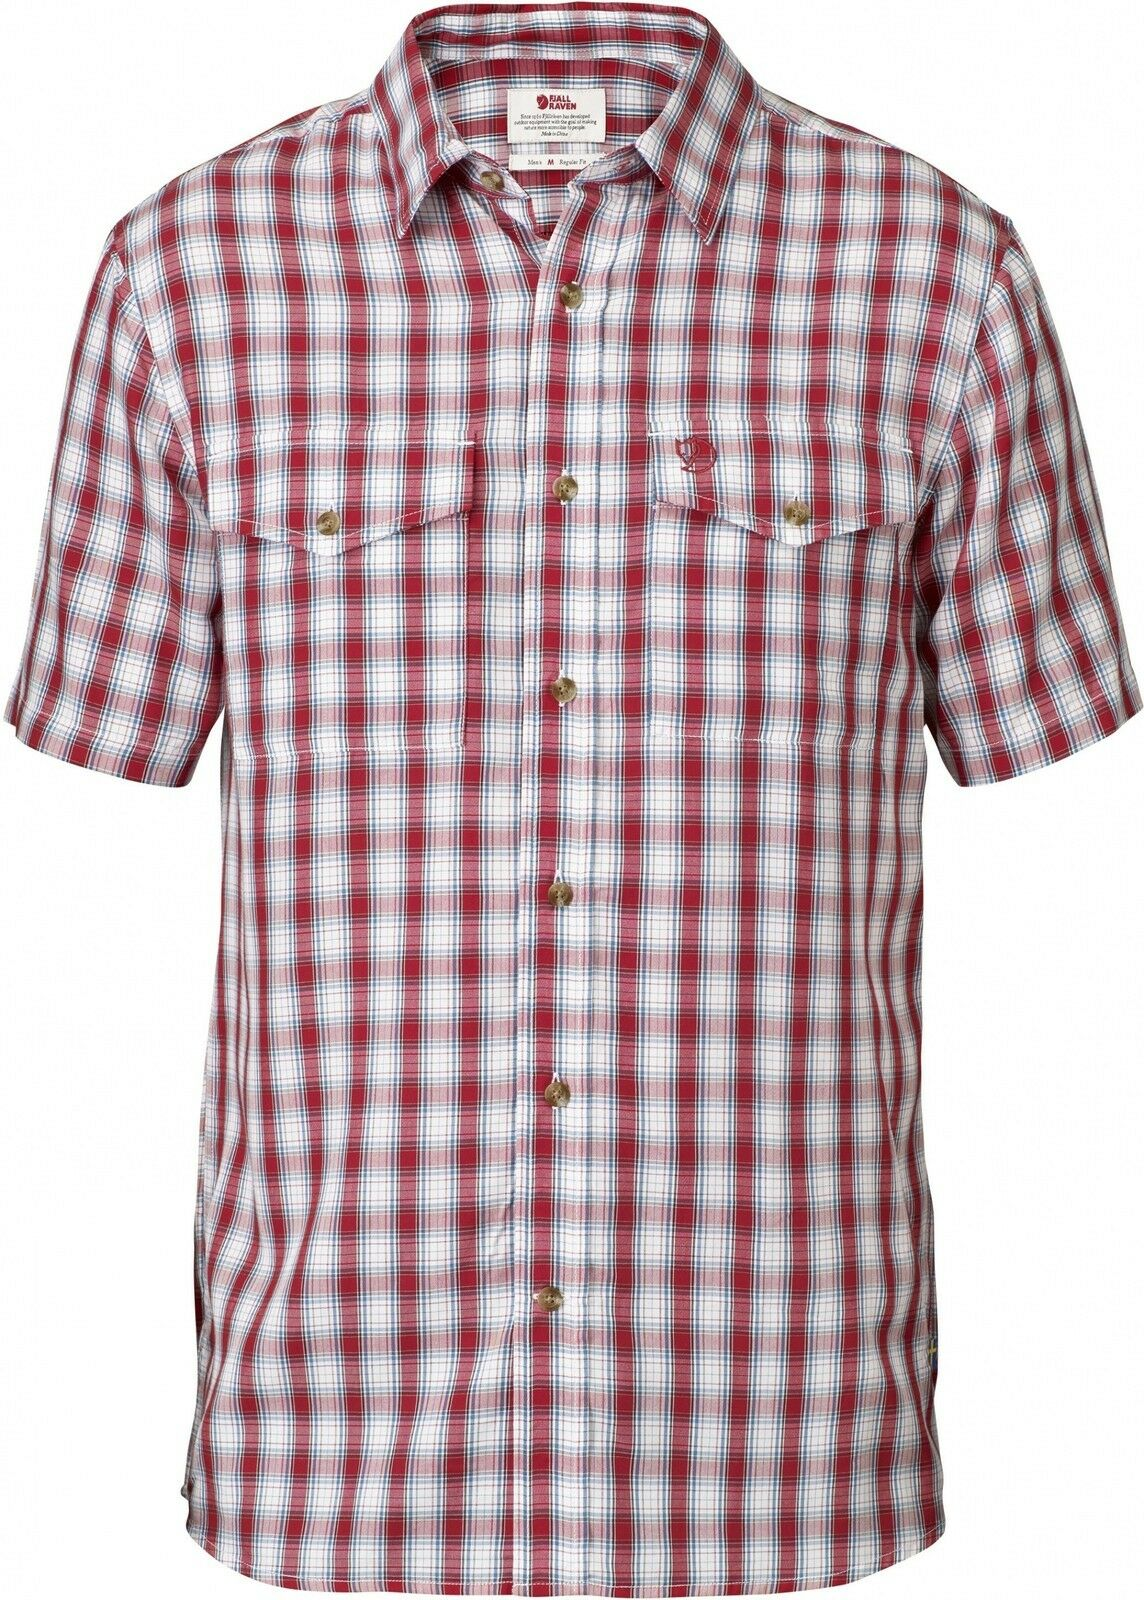 Fjäll Räven Abisko Cool Shirt Ss Men, Short-Sleeved Men's Shirt, Red, S